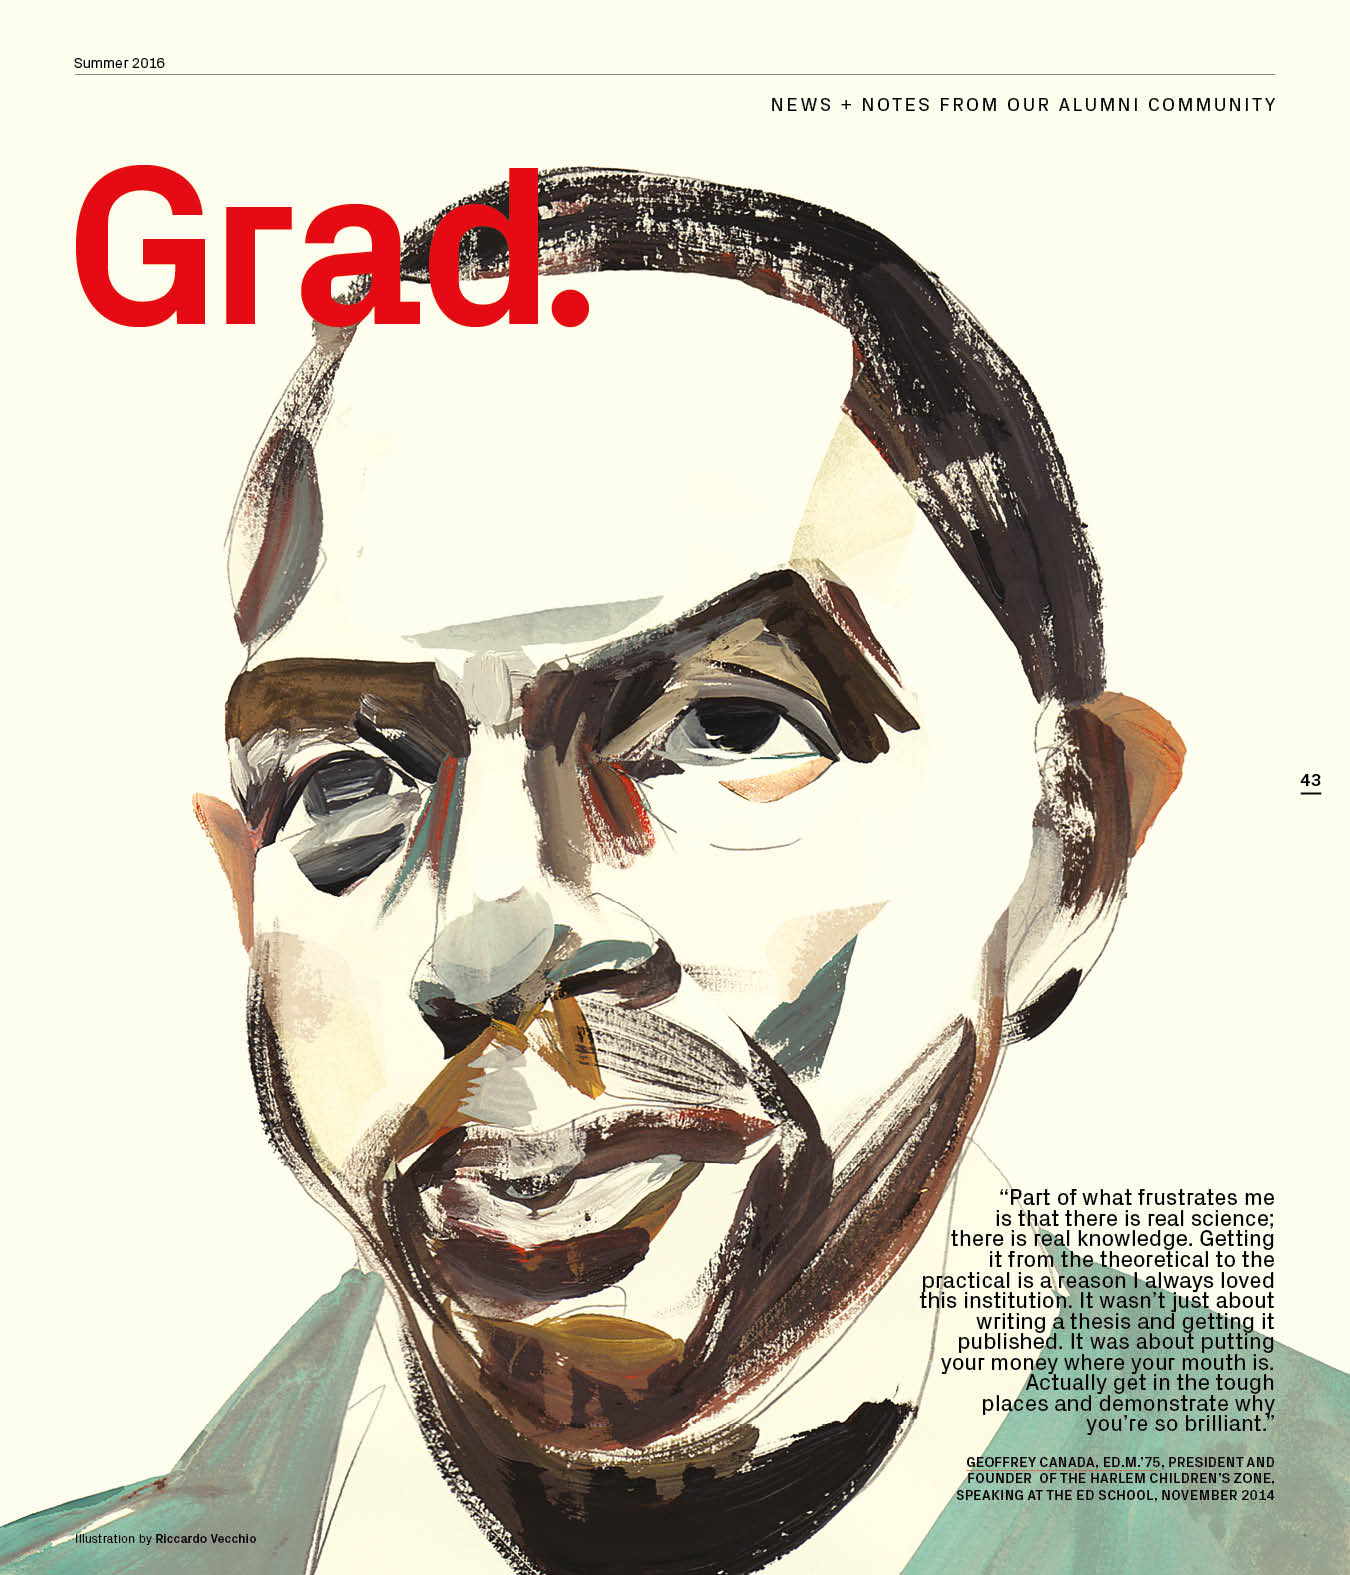 Grad., the magazine's alumni notes section, is illustrated by Riccardo Vecchio.